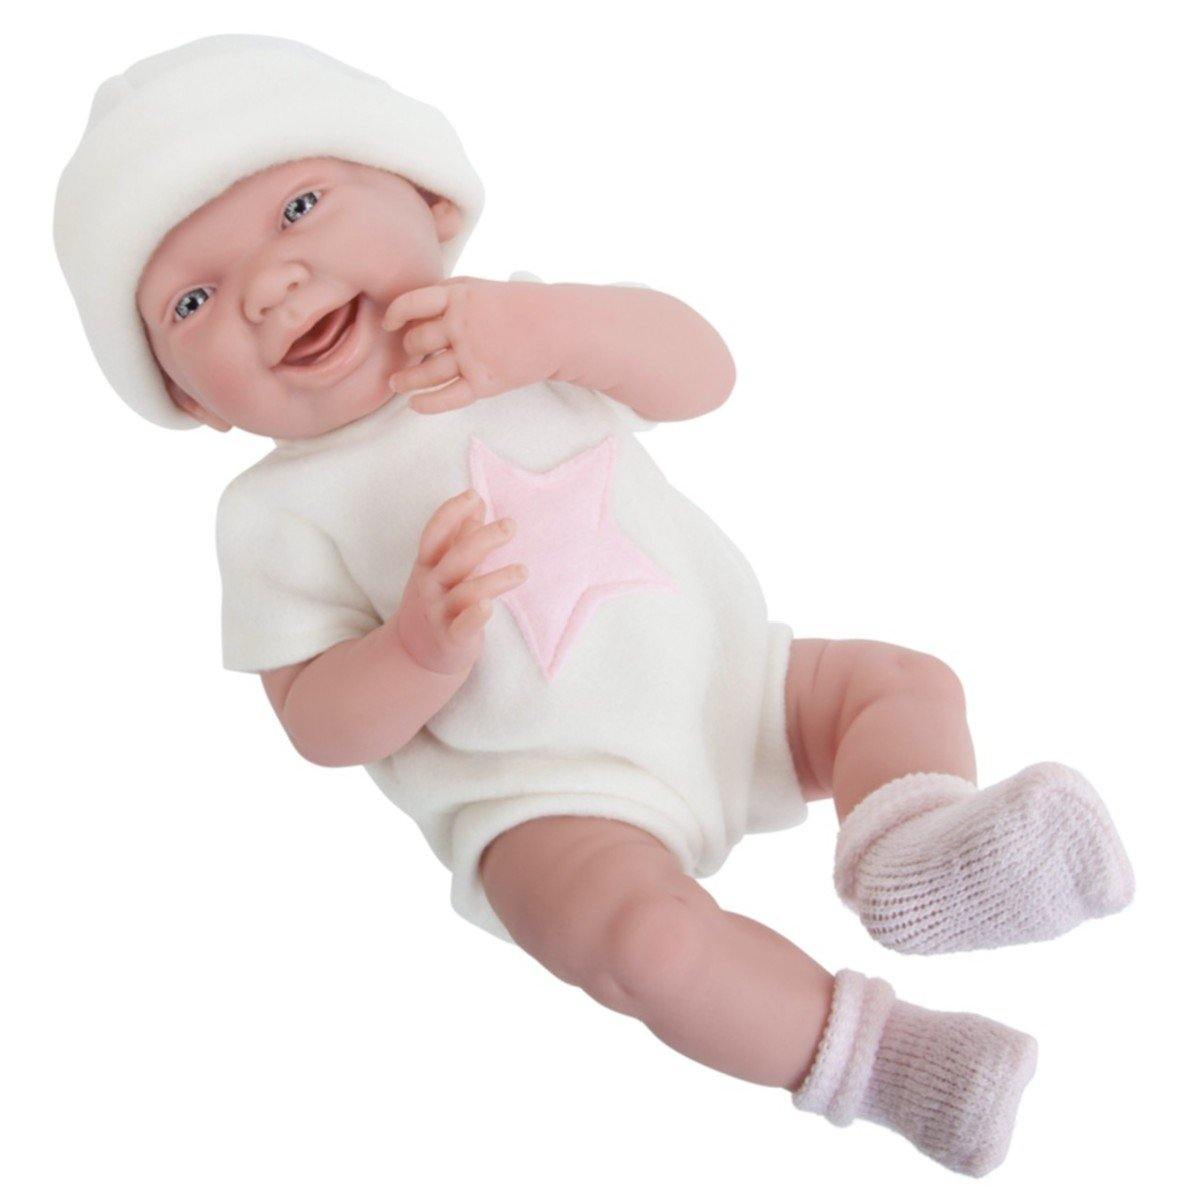 JC Toys, La Newborn All Vinyl 15in Real Girl Baby Doll-White w/Pink Star Outfit